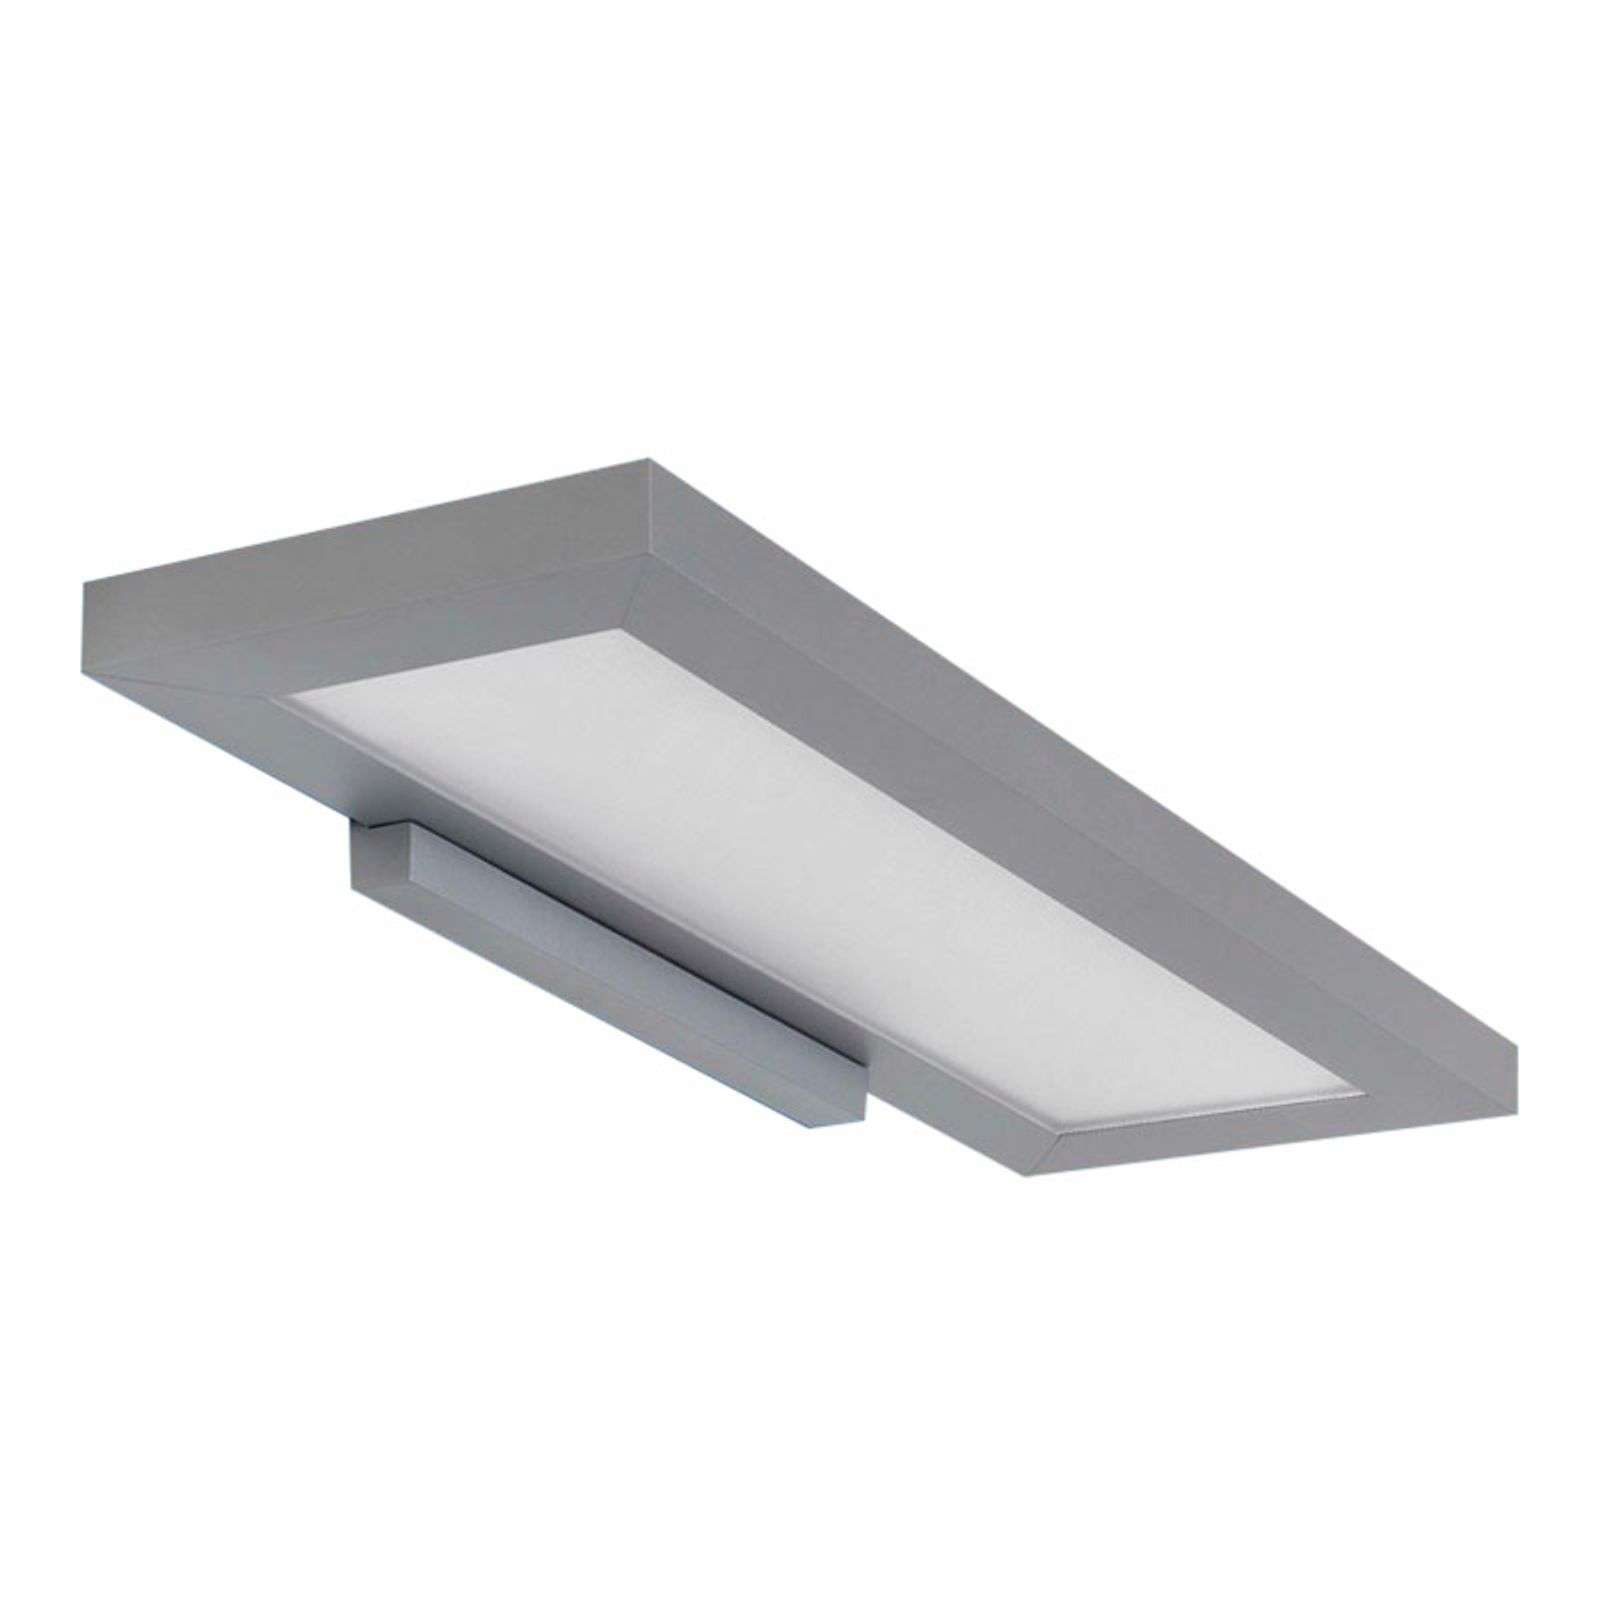 Applique LED CWP à vitre opale, 28,8 W